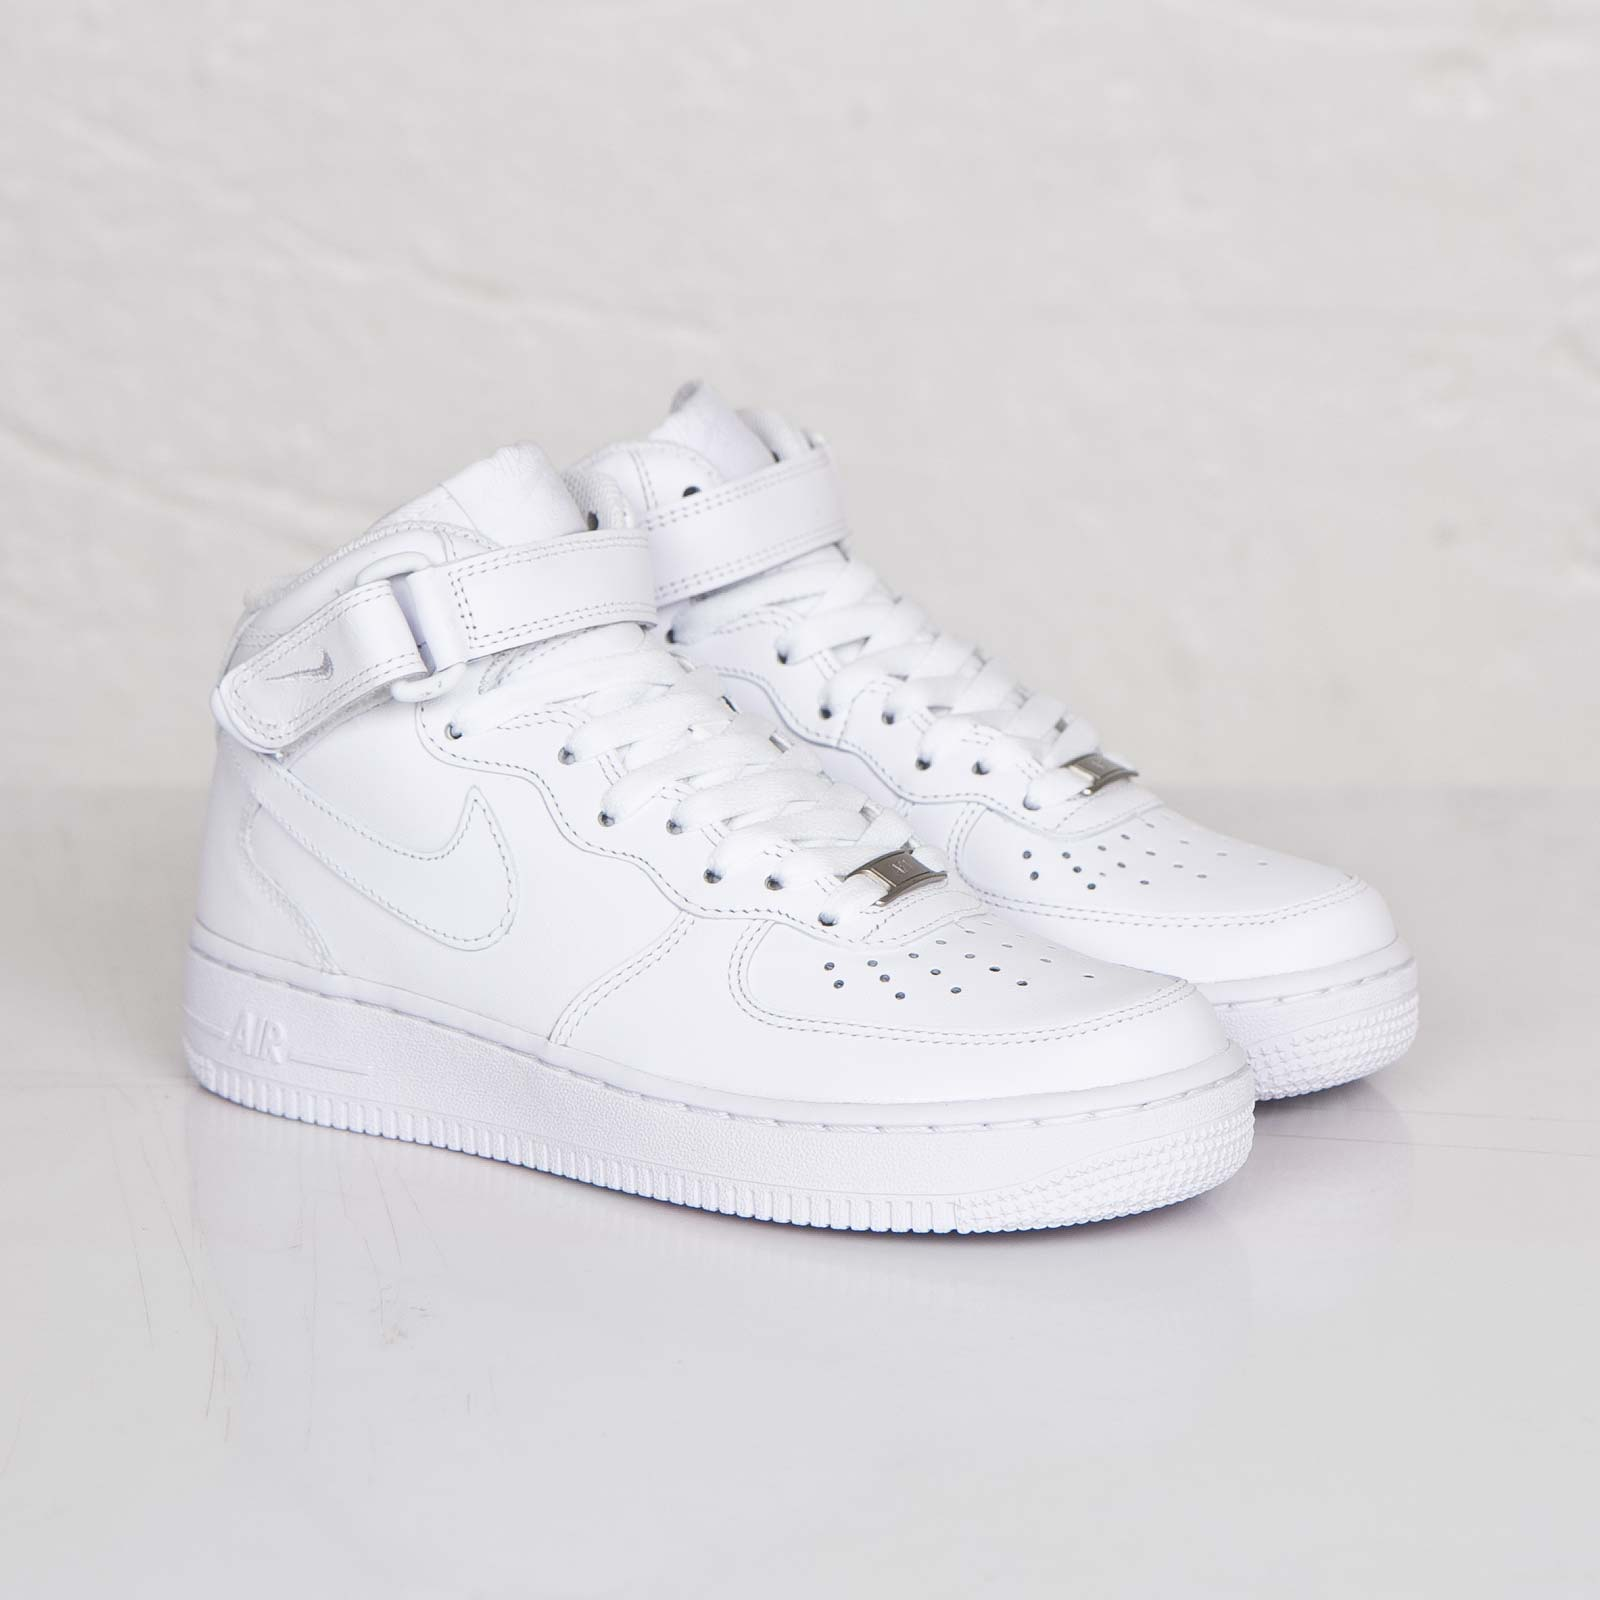 Nike Wmns Air Force 1 Mid 07 LE - 366731-100 - Sneakersnstuff ... 92f2193f007b